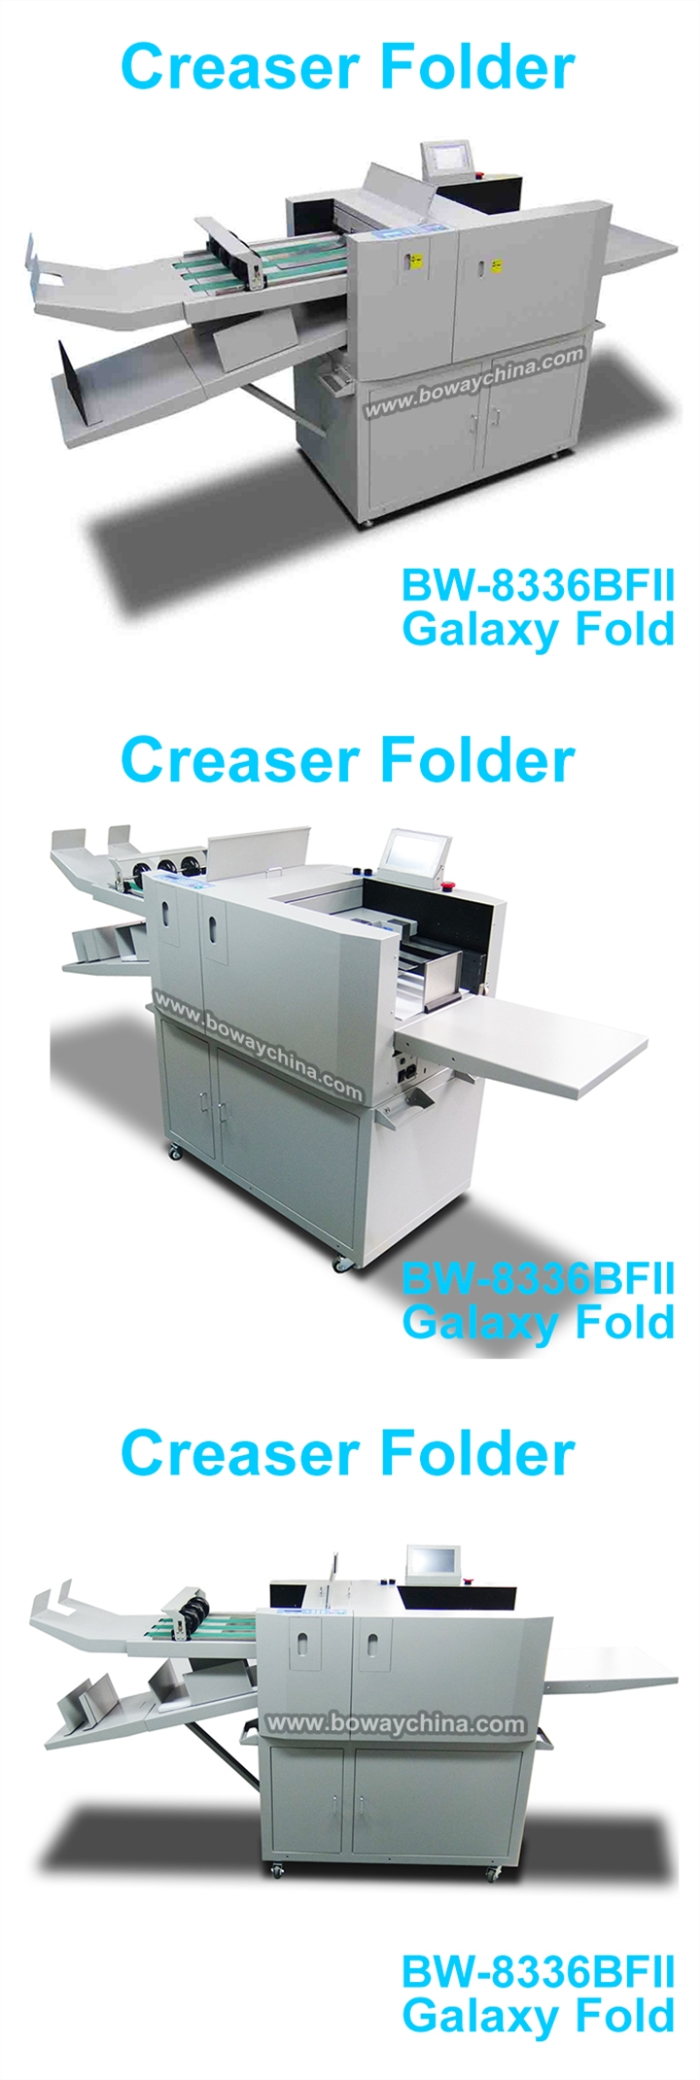 BOWAY BW-8336BFII 7 Folding Types Electric Paper Sheets Creaser Folder